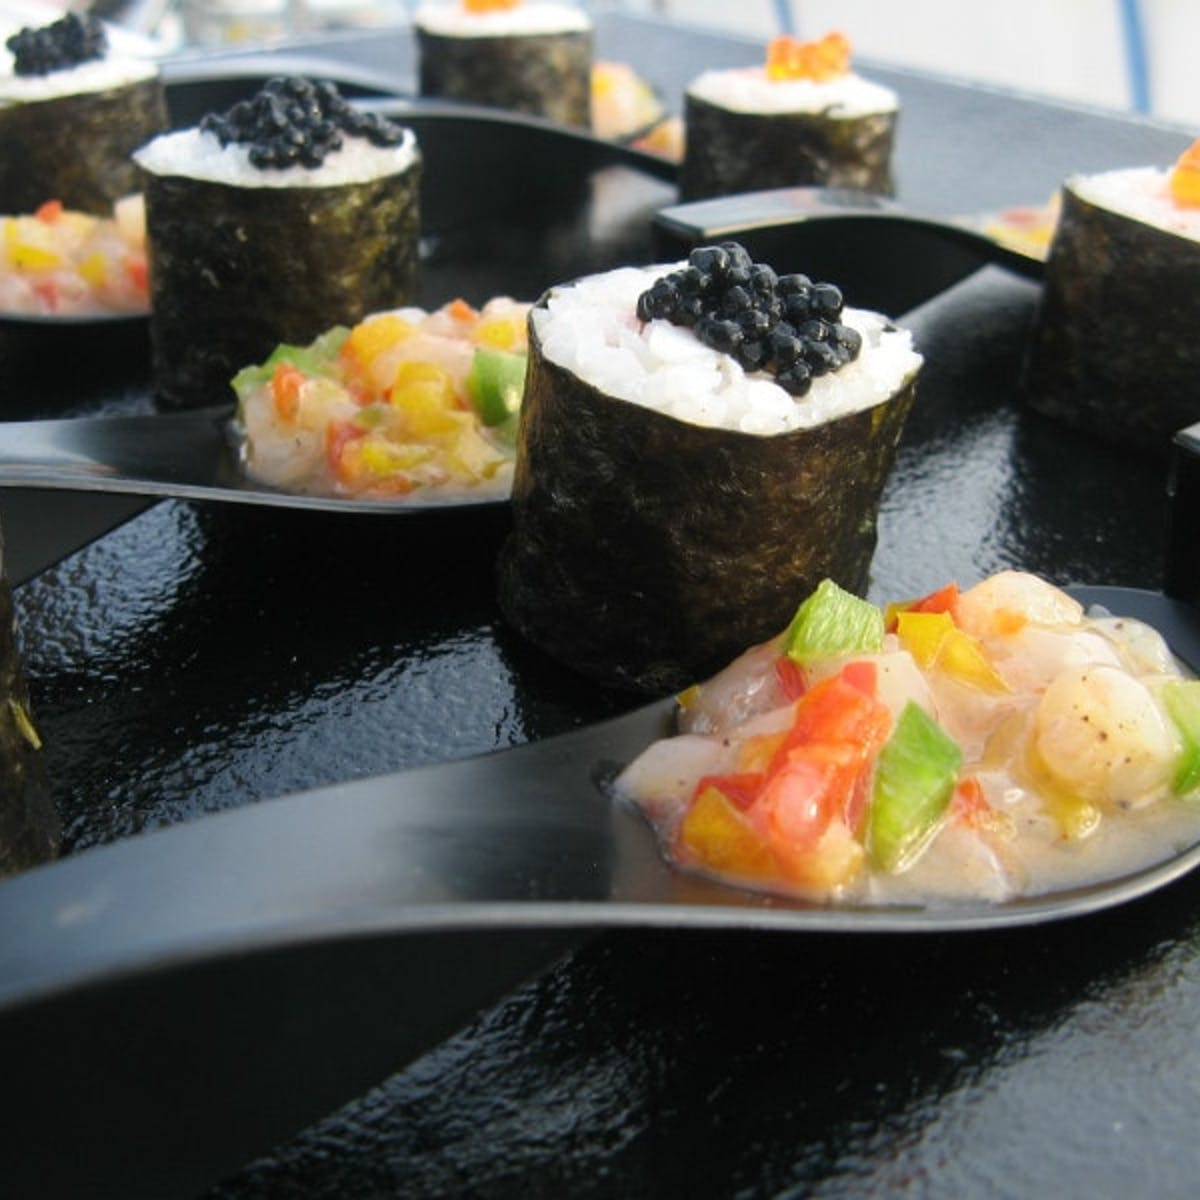 Sushi catering in Catamaran Orsom Barcelona